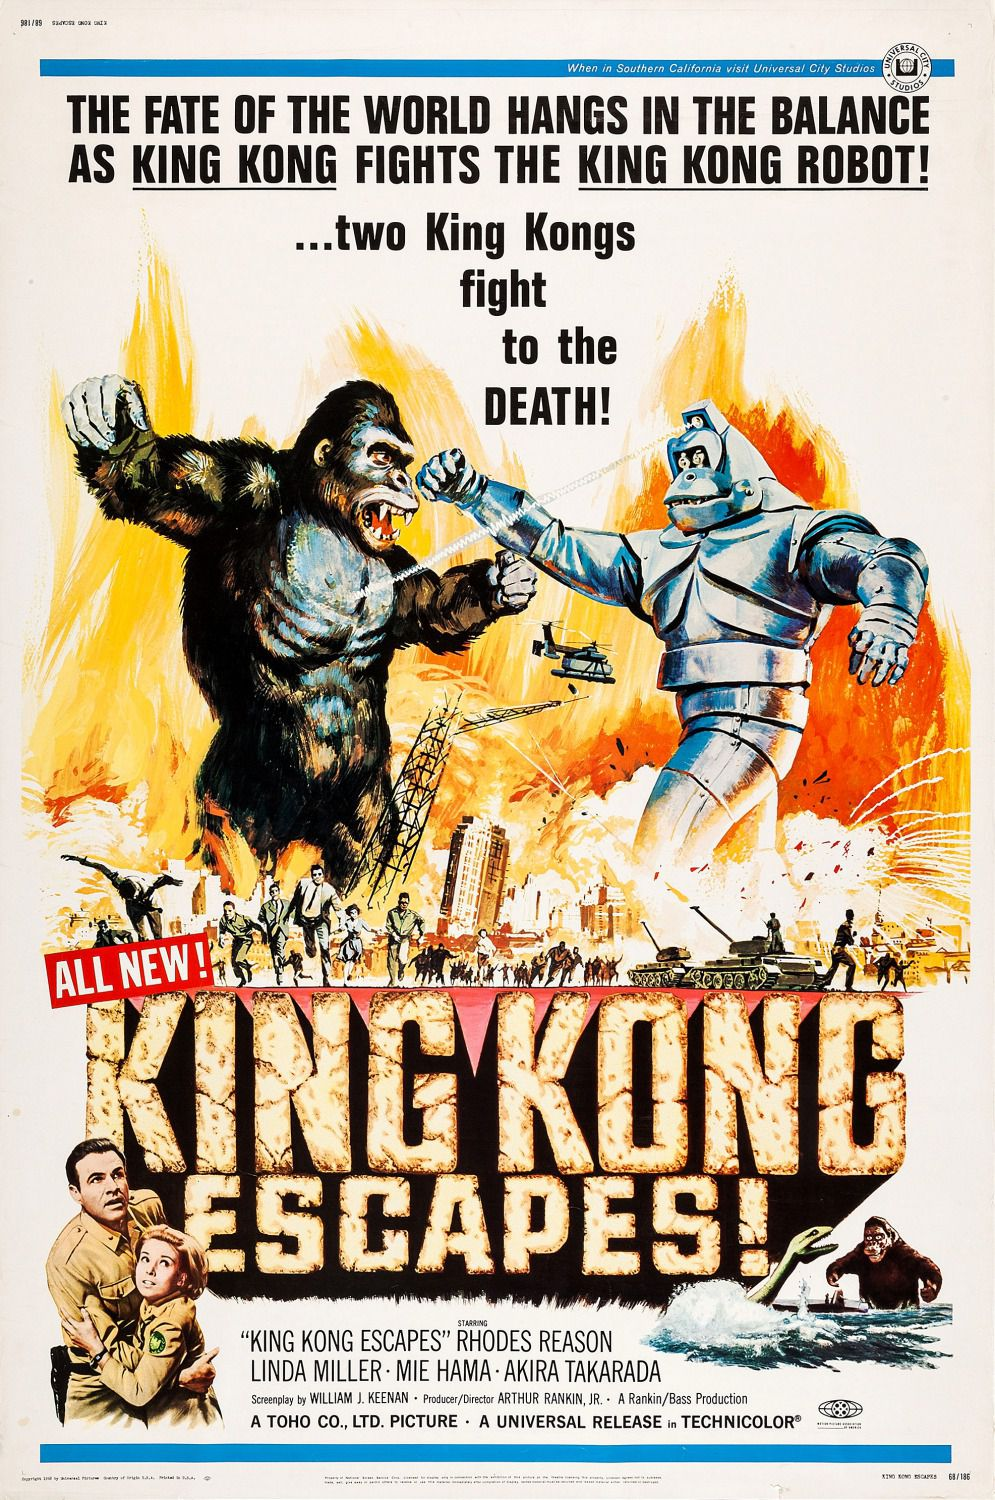 King Kong Escapes - Kingu Kongu no Gyakushu (1967) - Battle with a Kong Robot - classic cult poster